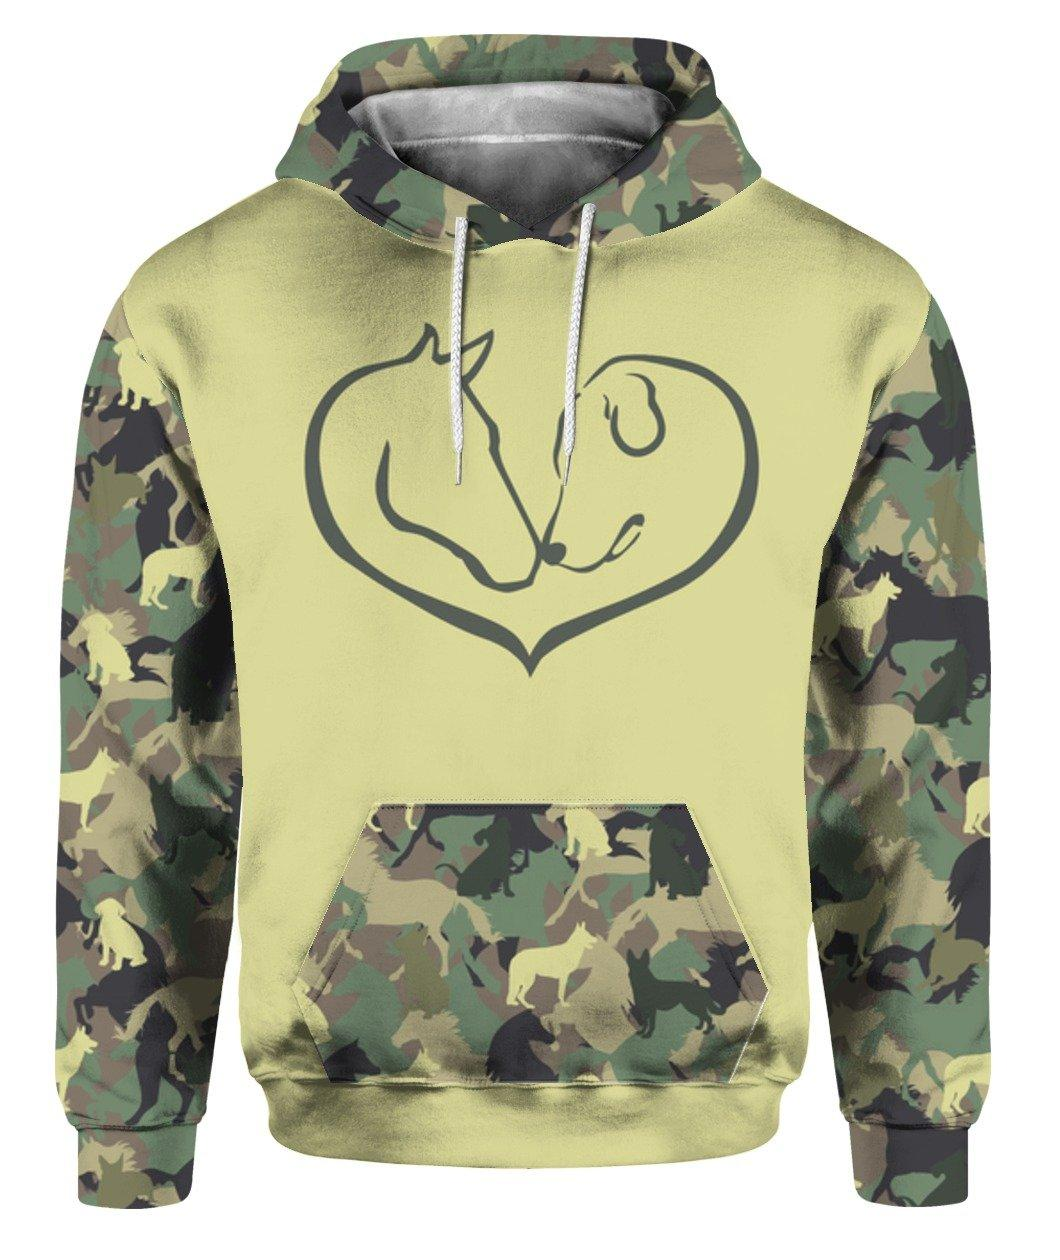 Easily Distracted By Horses And Dogs Heart Shape Camo 3d Full Printed Shirt 3d Graphic Printed Tshirt Hoodie Up To 5xl